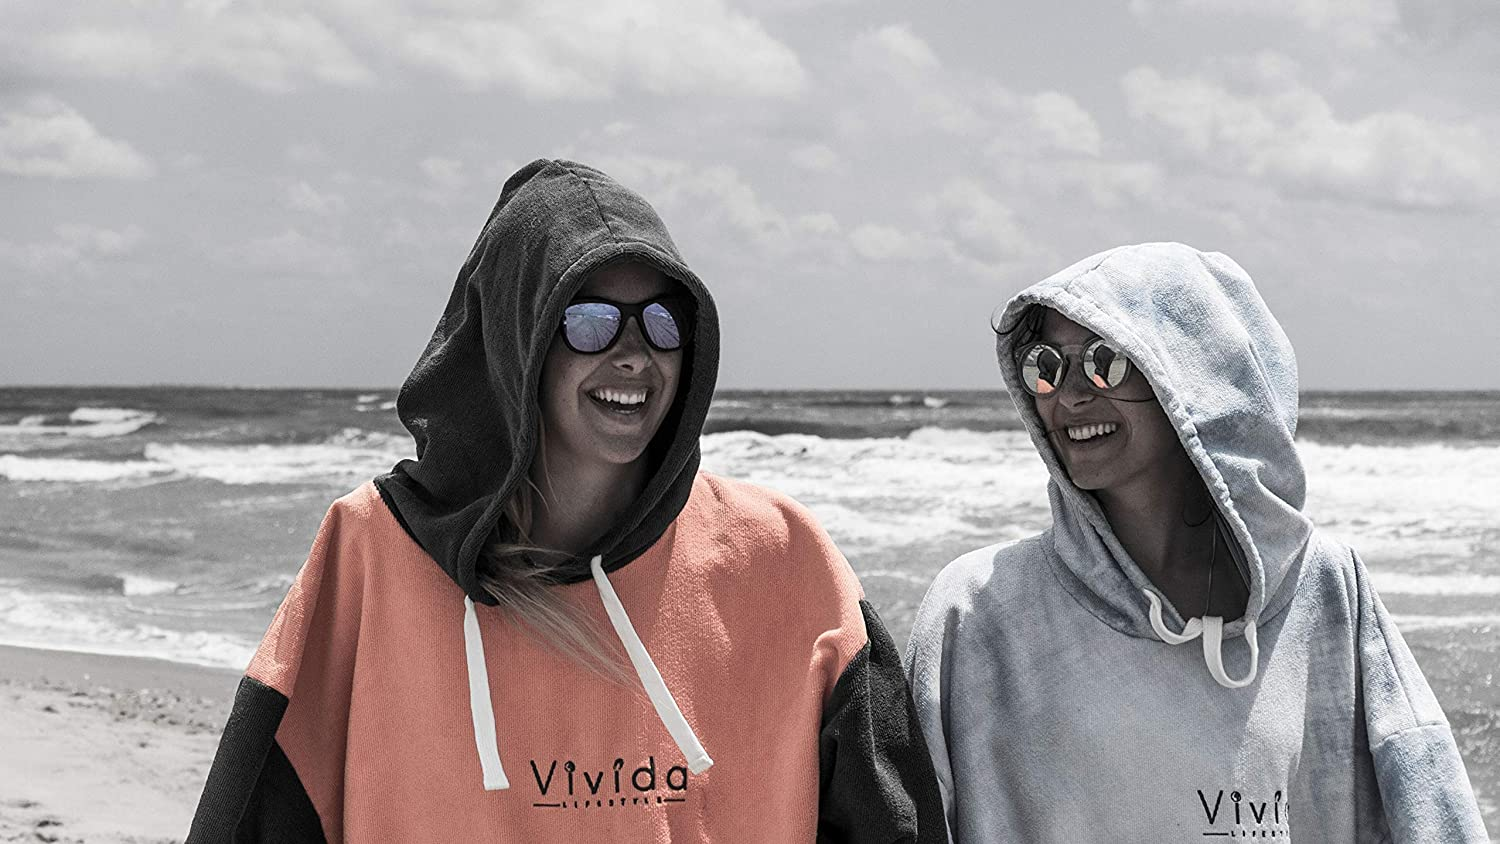 Swim /& Triathlon | Original Hooded Poncho Towel Changing Robe with Quickdry Fabric and Easy Underarm Access Large Pocket with Concealed Zip Pouch for Beach Vivida Lifestyle Surf